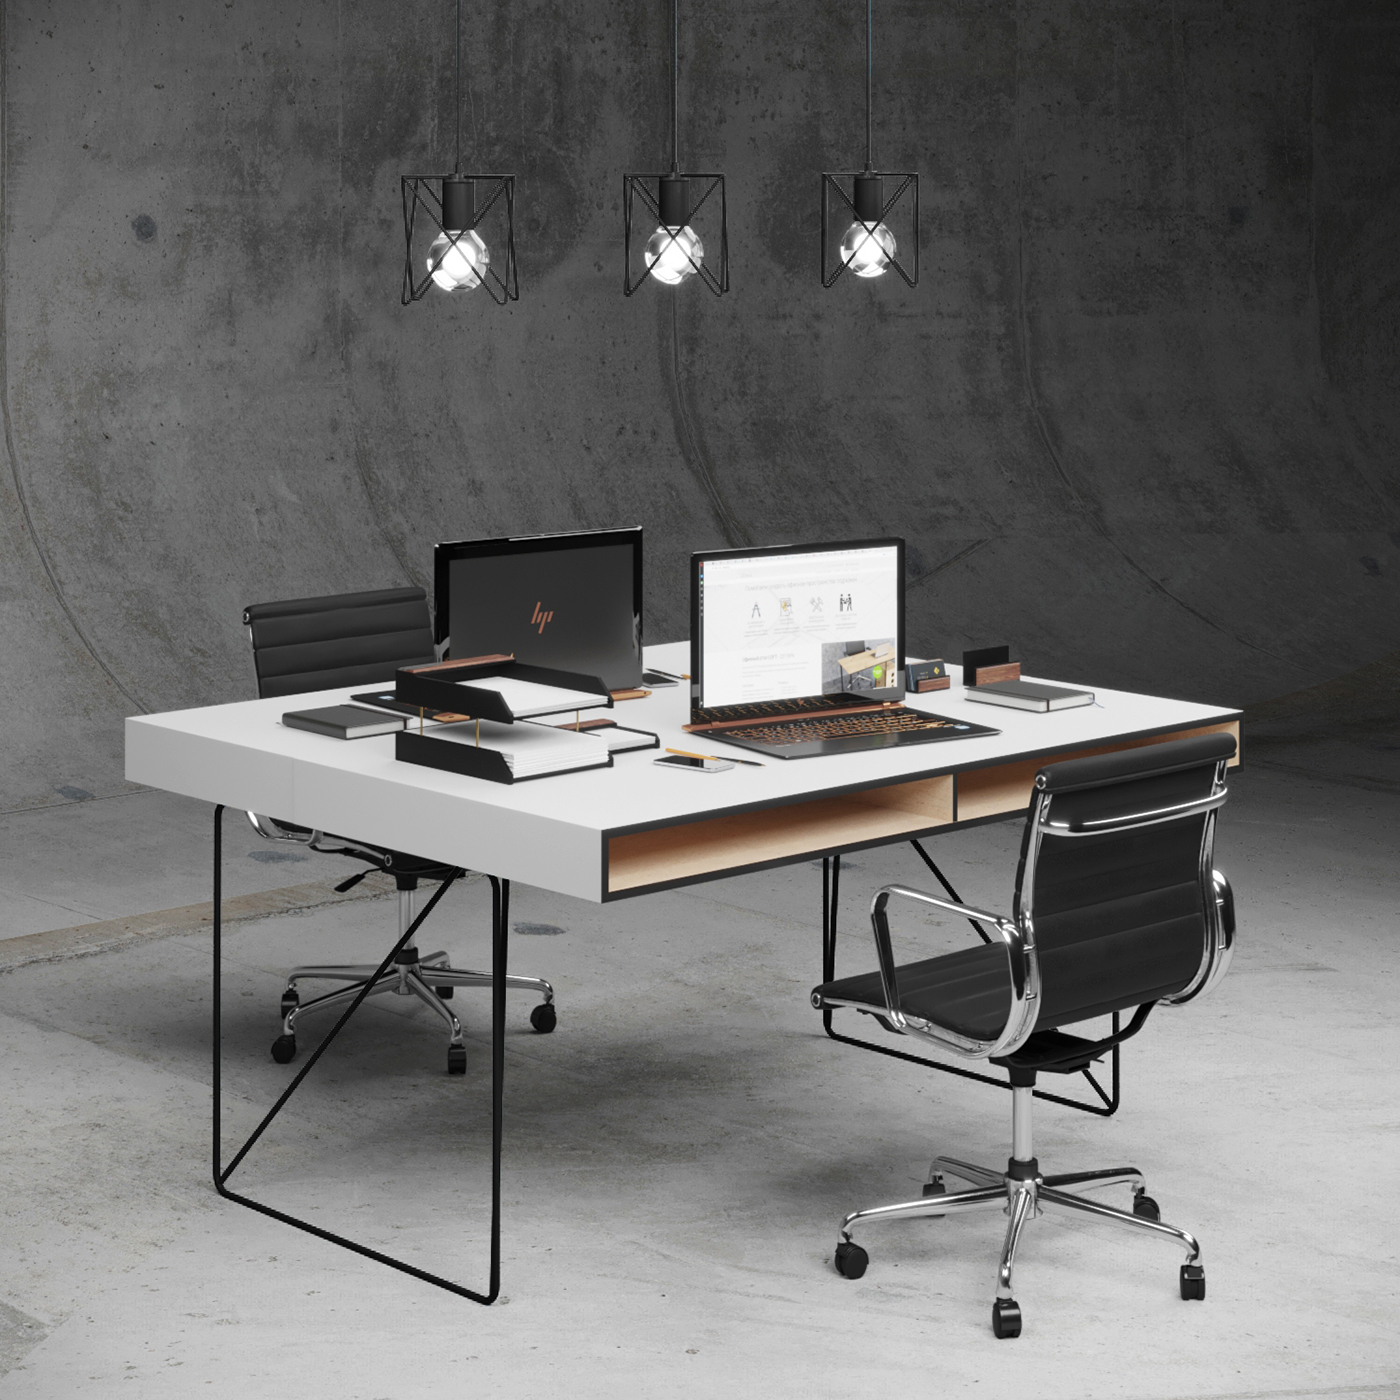 Office Furniture Collection on Behance